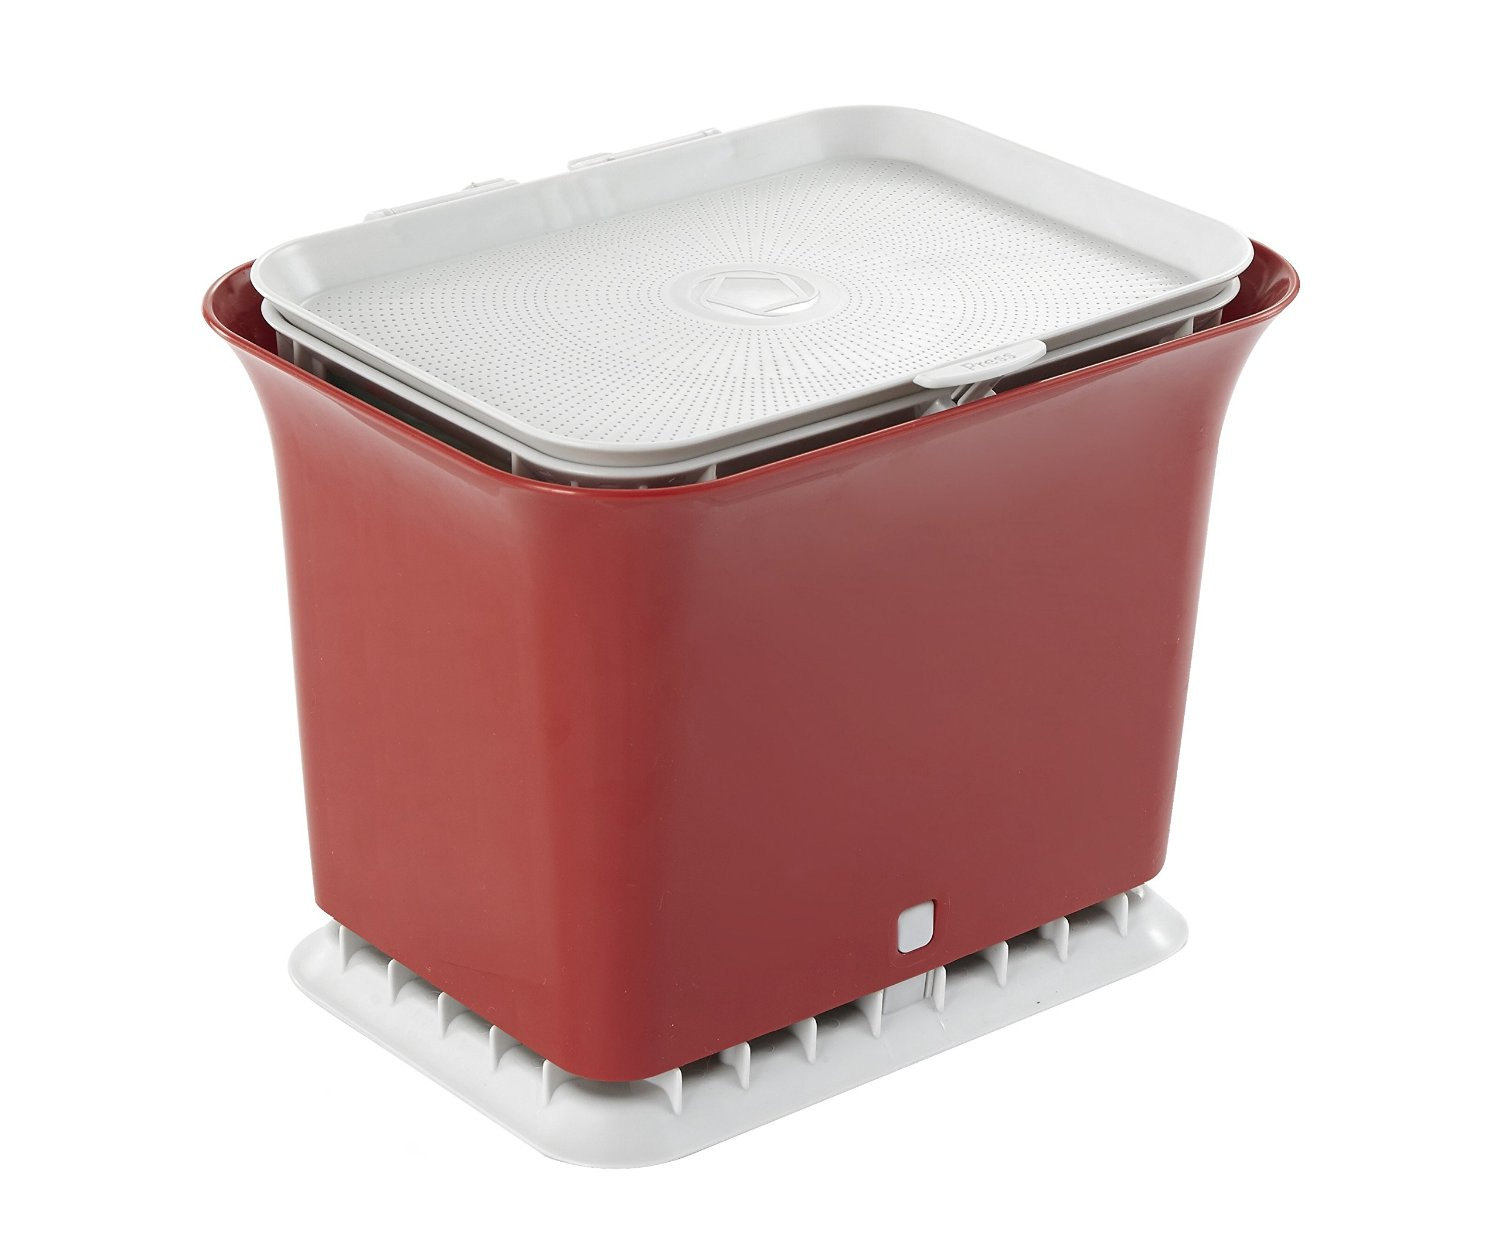 Full Circle Fresh Air odor-free kitchen compost collector, Ruby Red